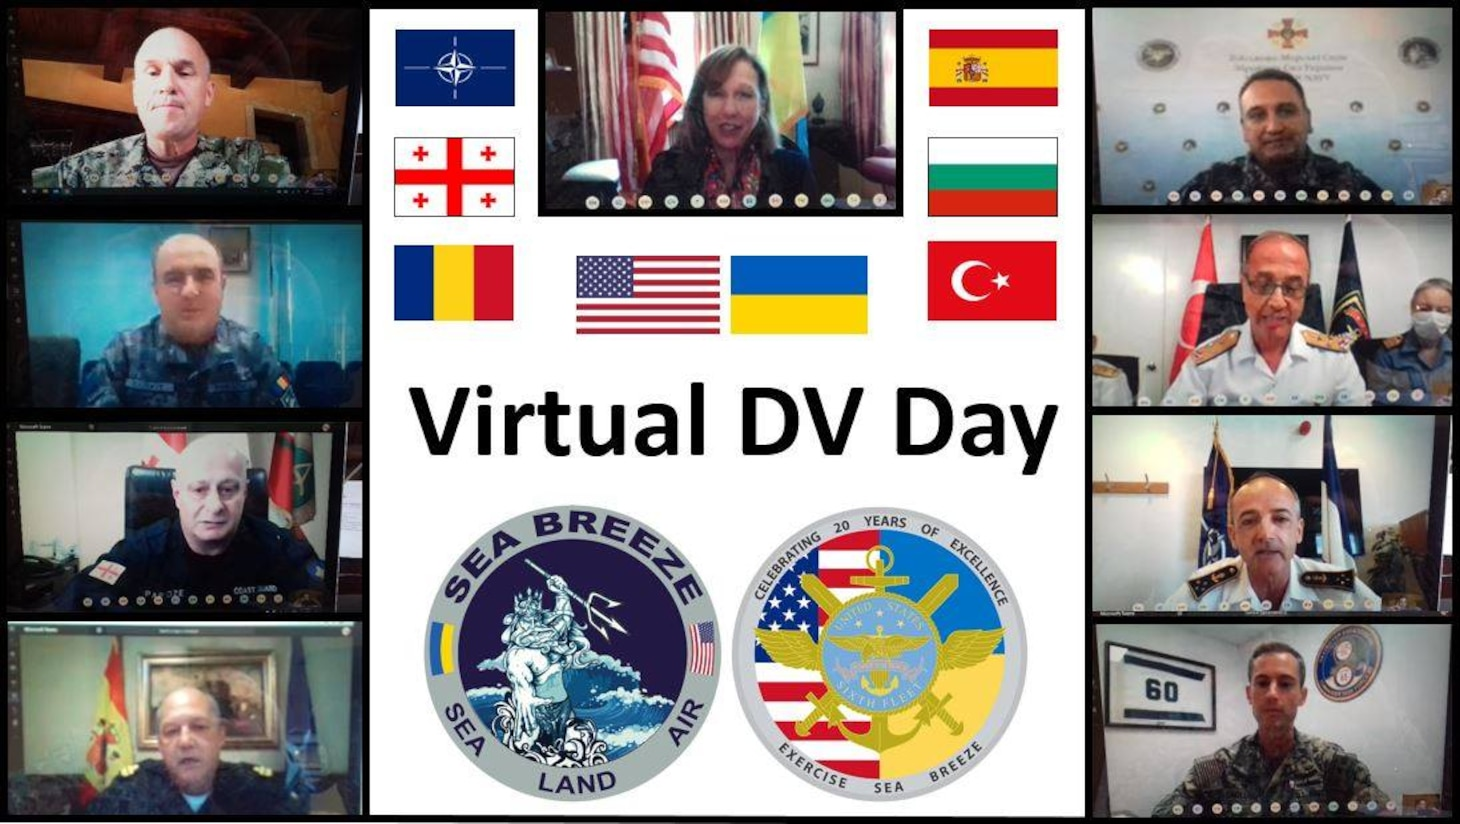 Sea Breeze 2020 Virtual DV Day